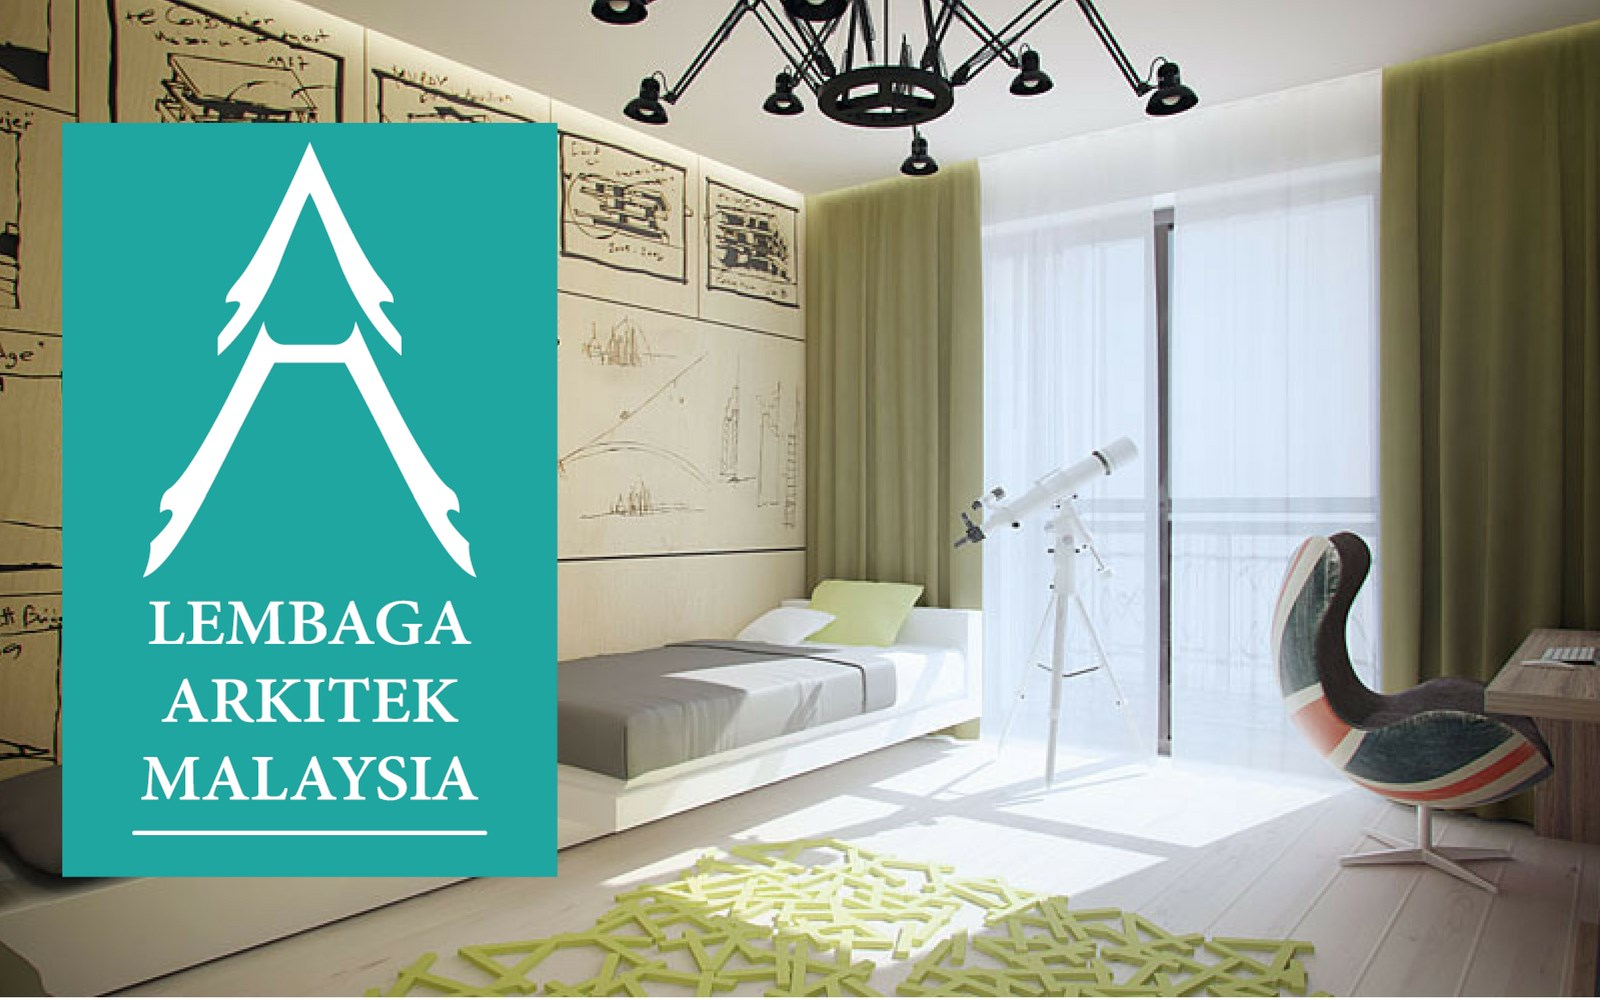 Board of Architects Malaysia makes registration of Interior Design